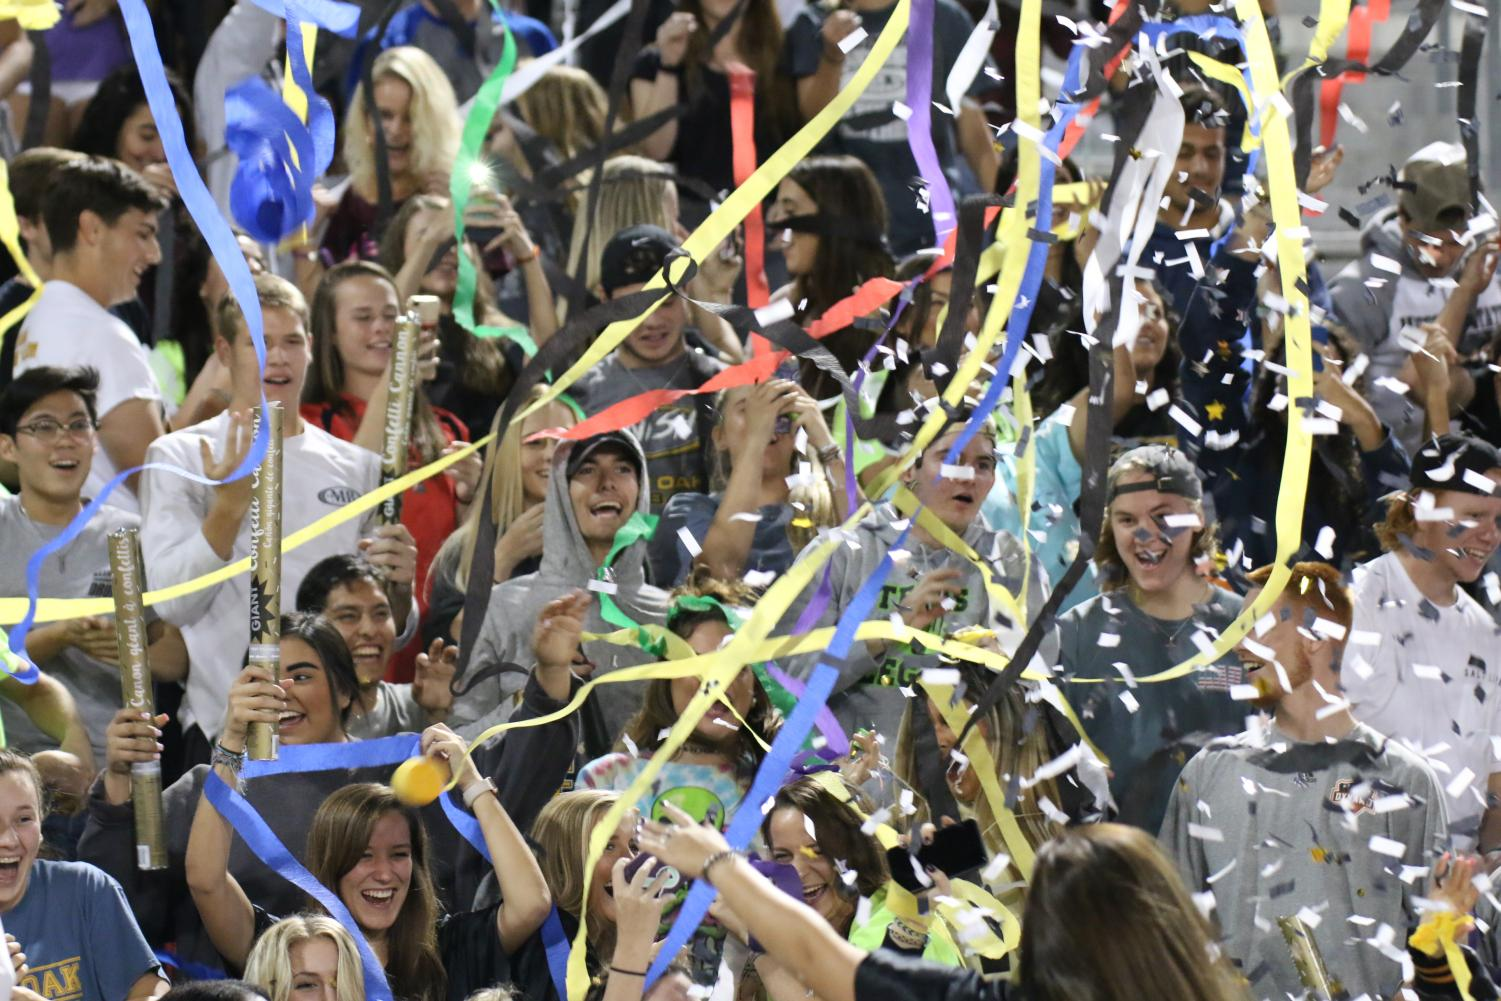 Celebrating during 3rd quarter with the drum line, the new stand leader organization ignites excitement in the student body.